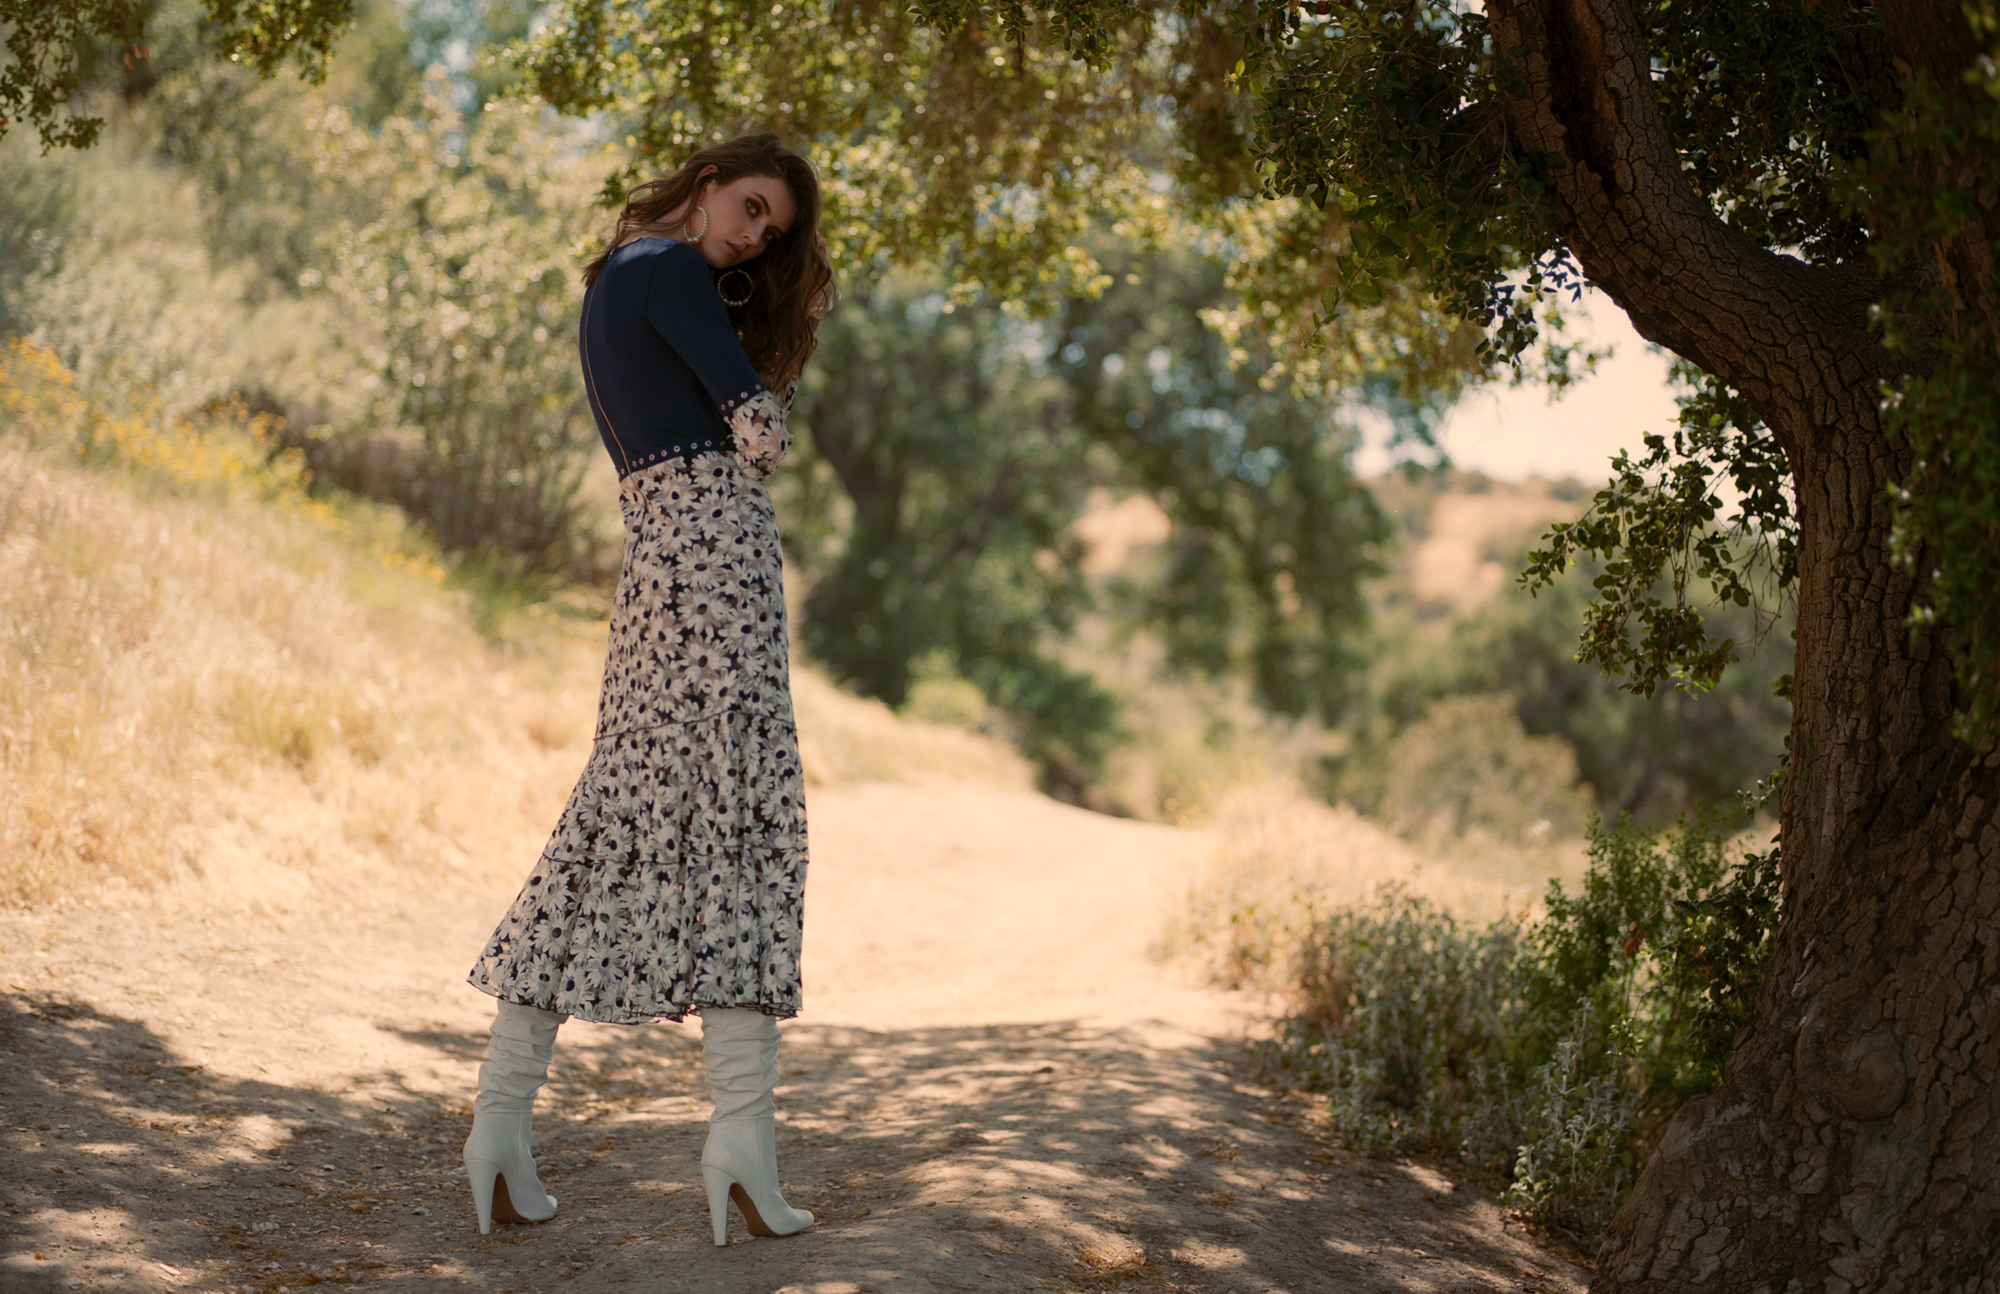 Into The Wild, Emily Rogers in fashion editorial for Promo Magazine by Ioannis Koussertari